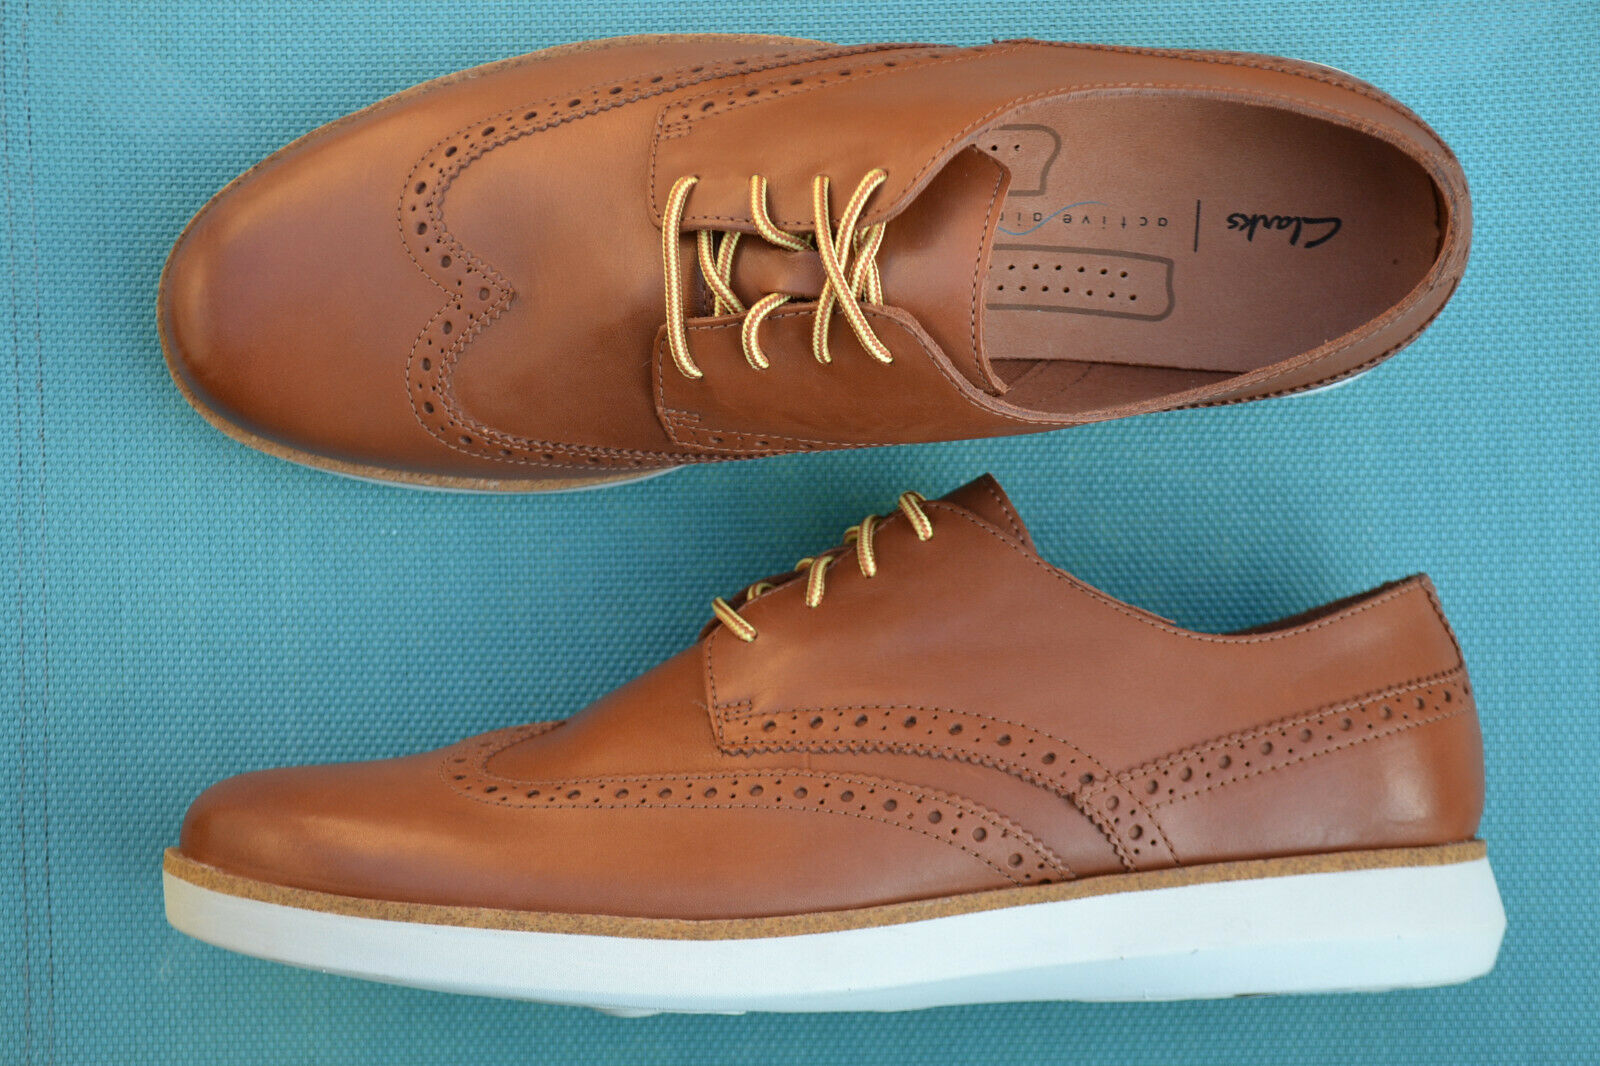 Clarks Mens Active Air Shoes FAIRFORD WALK Tan Leather UK 11 / 46